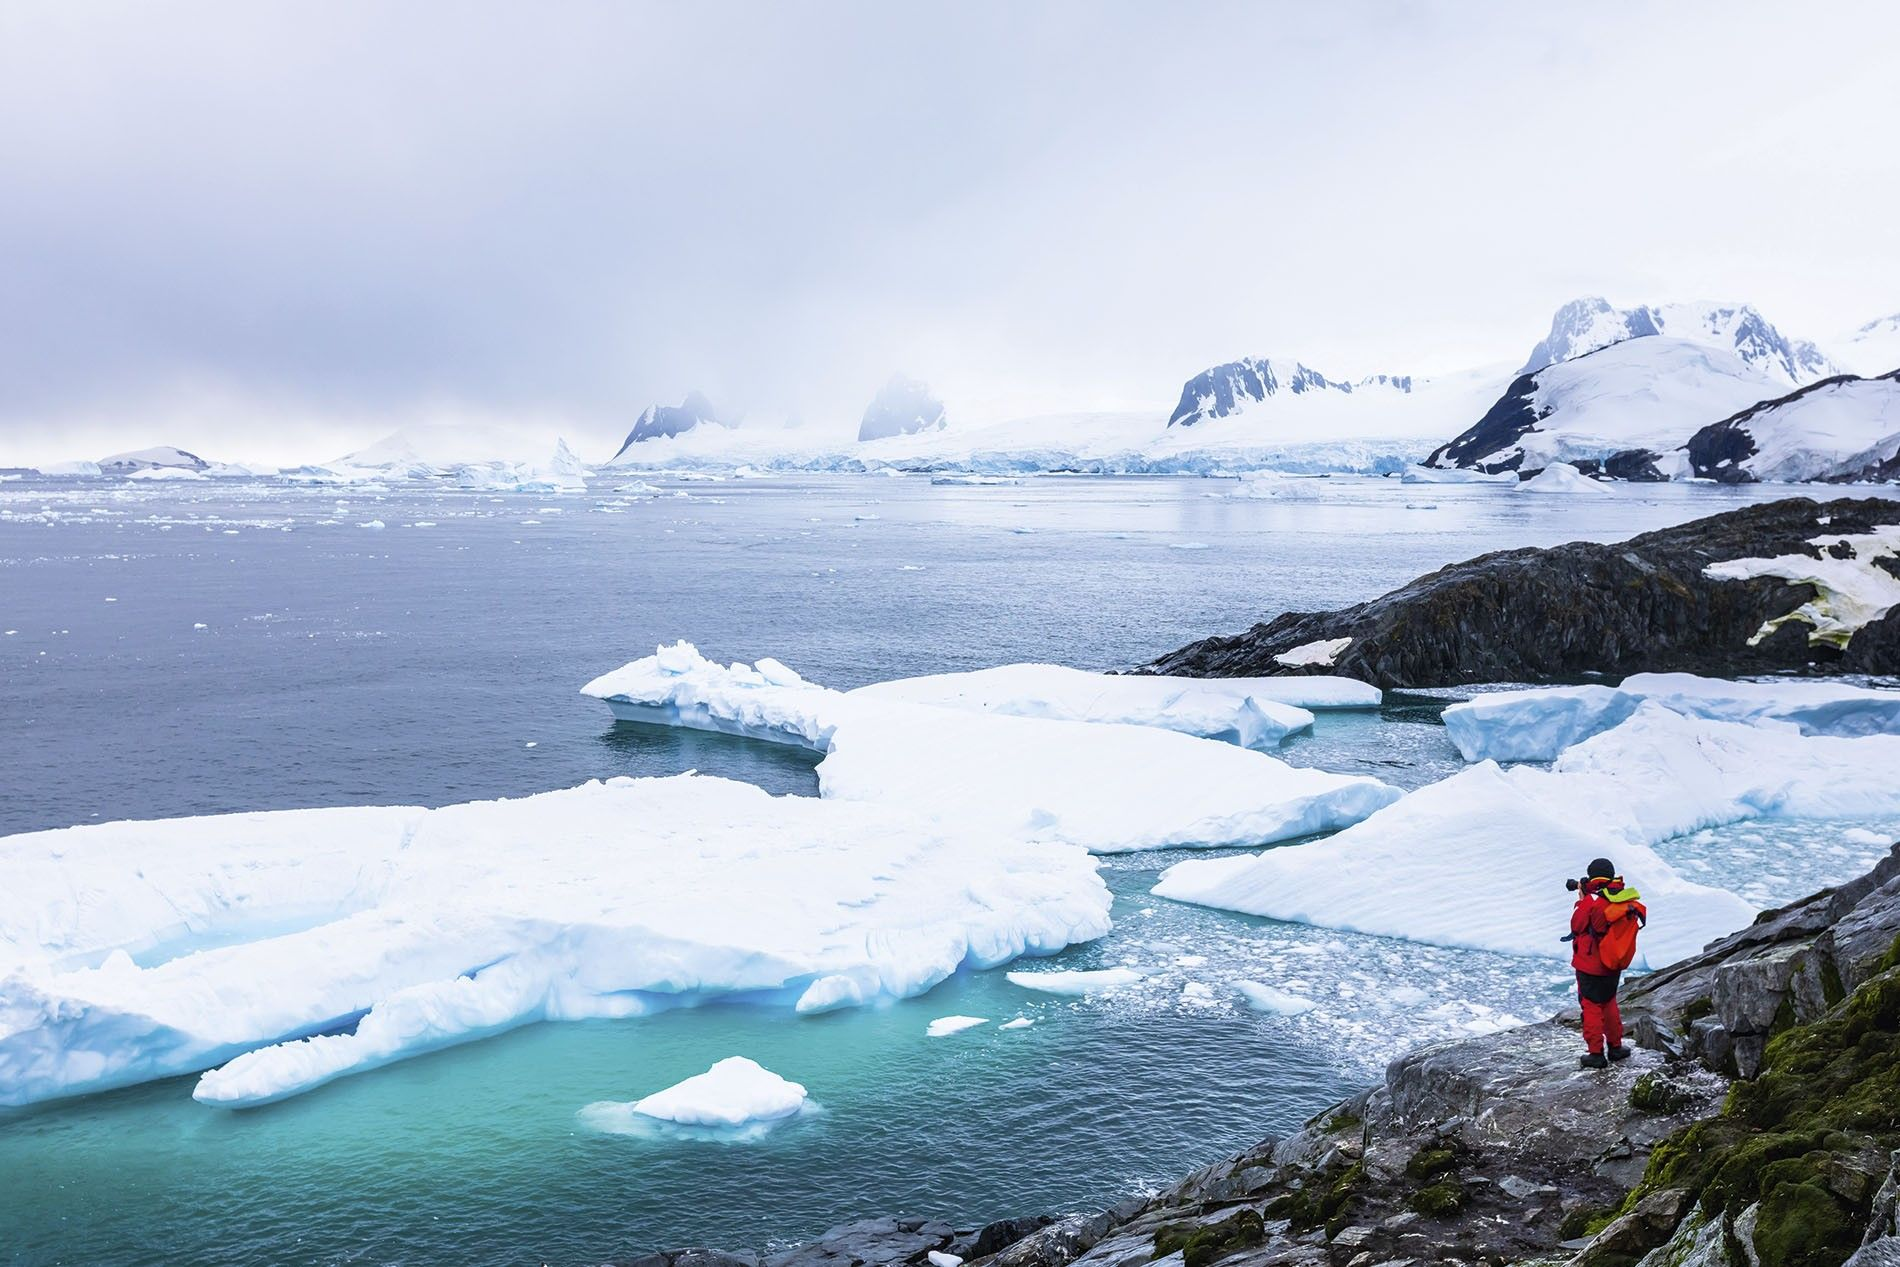 The dramatic frozen landscapes of Antarctica are a photographer's dream.